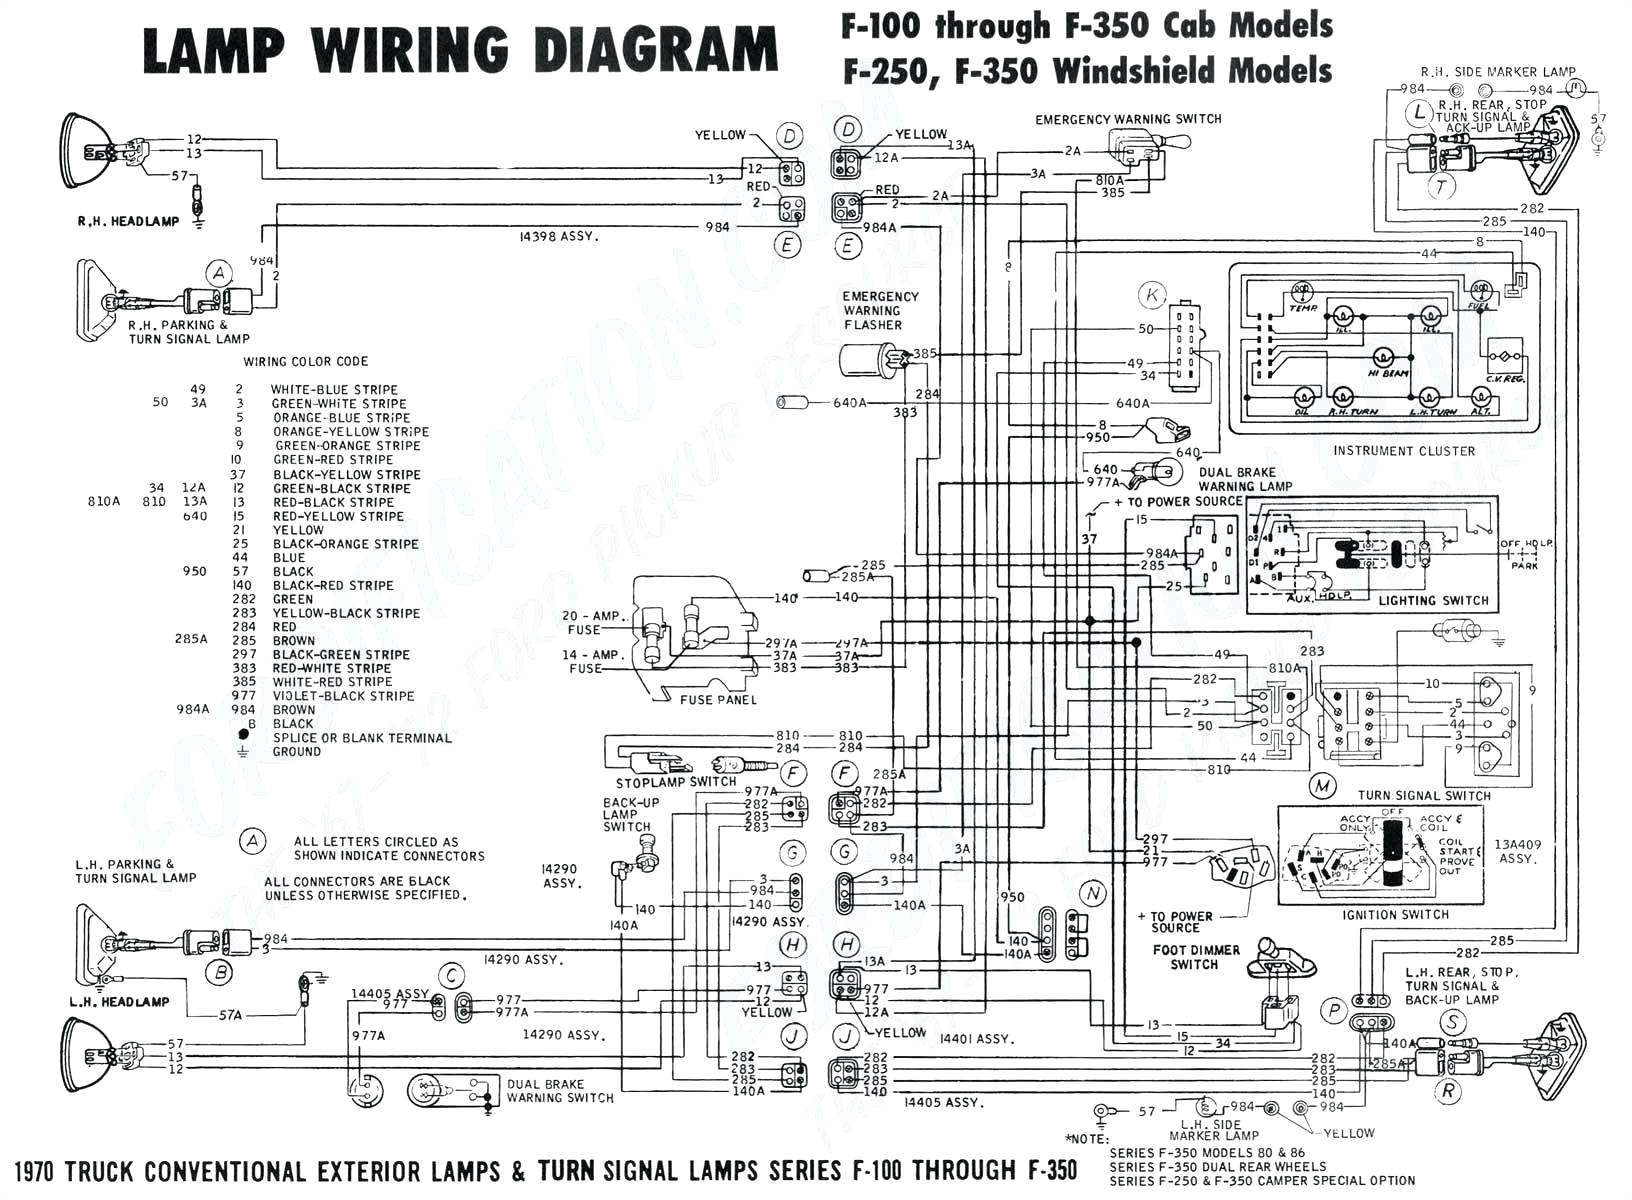 wiring diagram 12f12 wiring diagram page serie ccc 3 wiring diagram